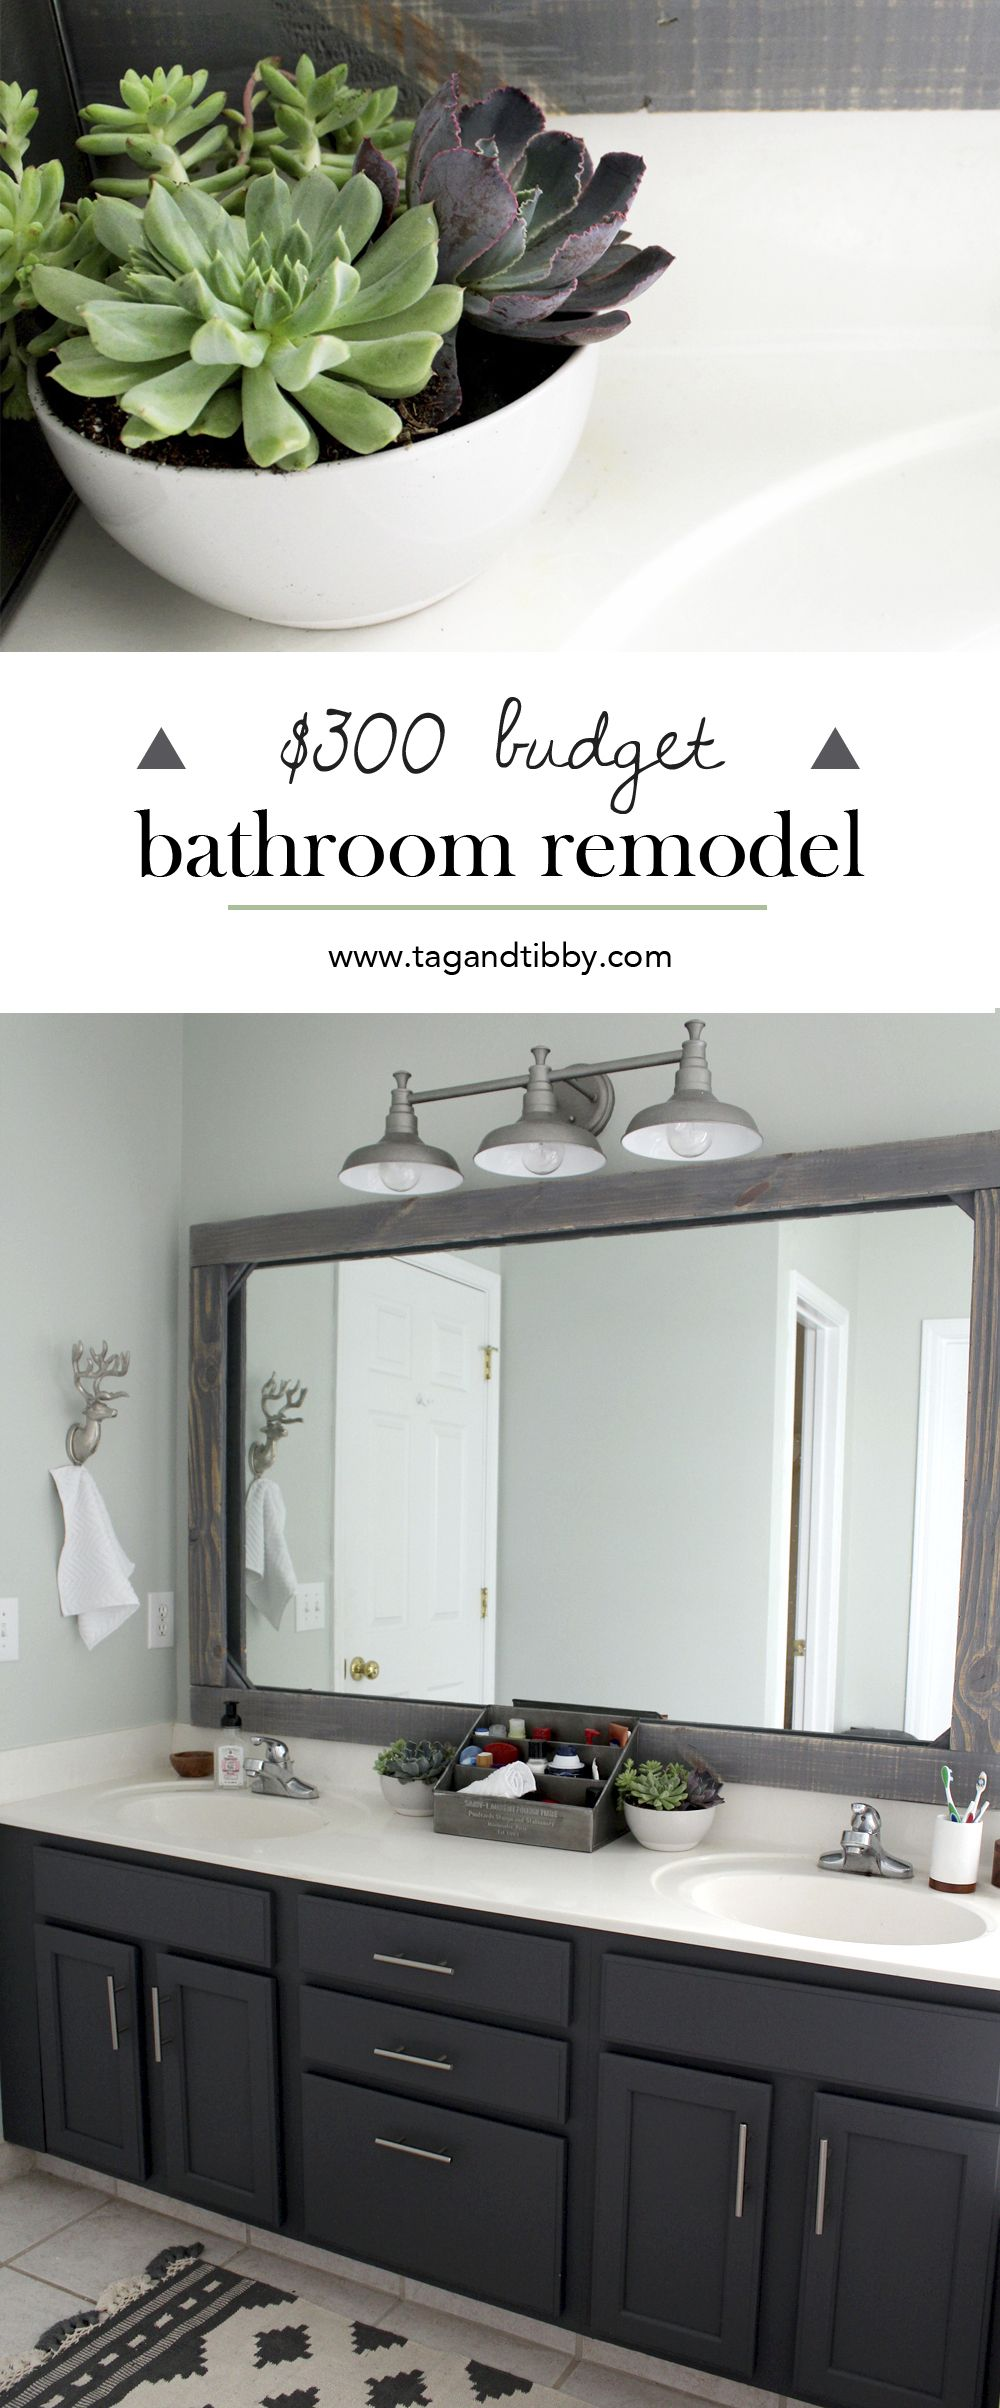 Master Bathroom Remodel Pinterest Sw Sea Salt Sea Salt And - Pinterest bathroom remodel on a budget